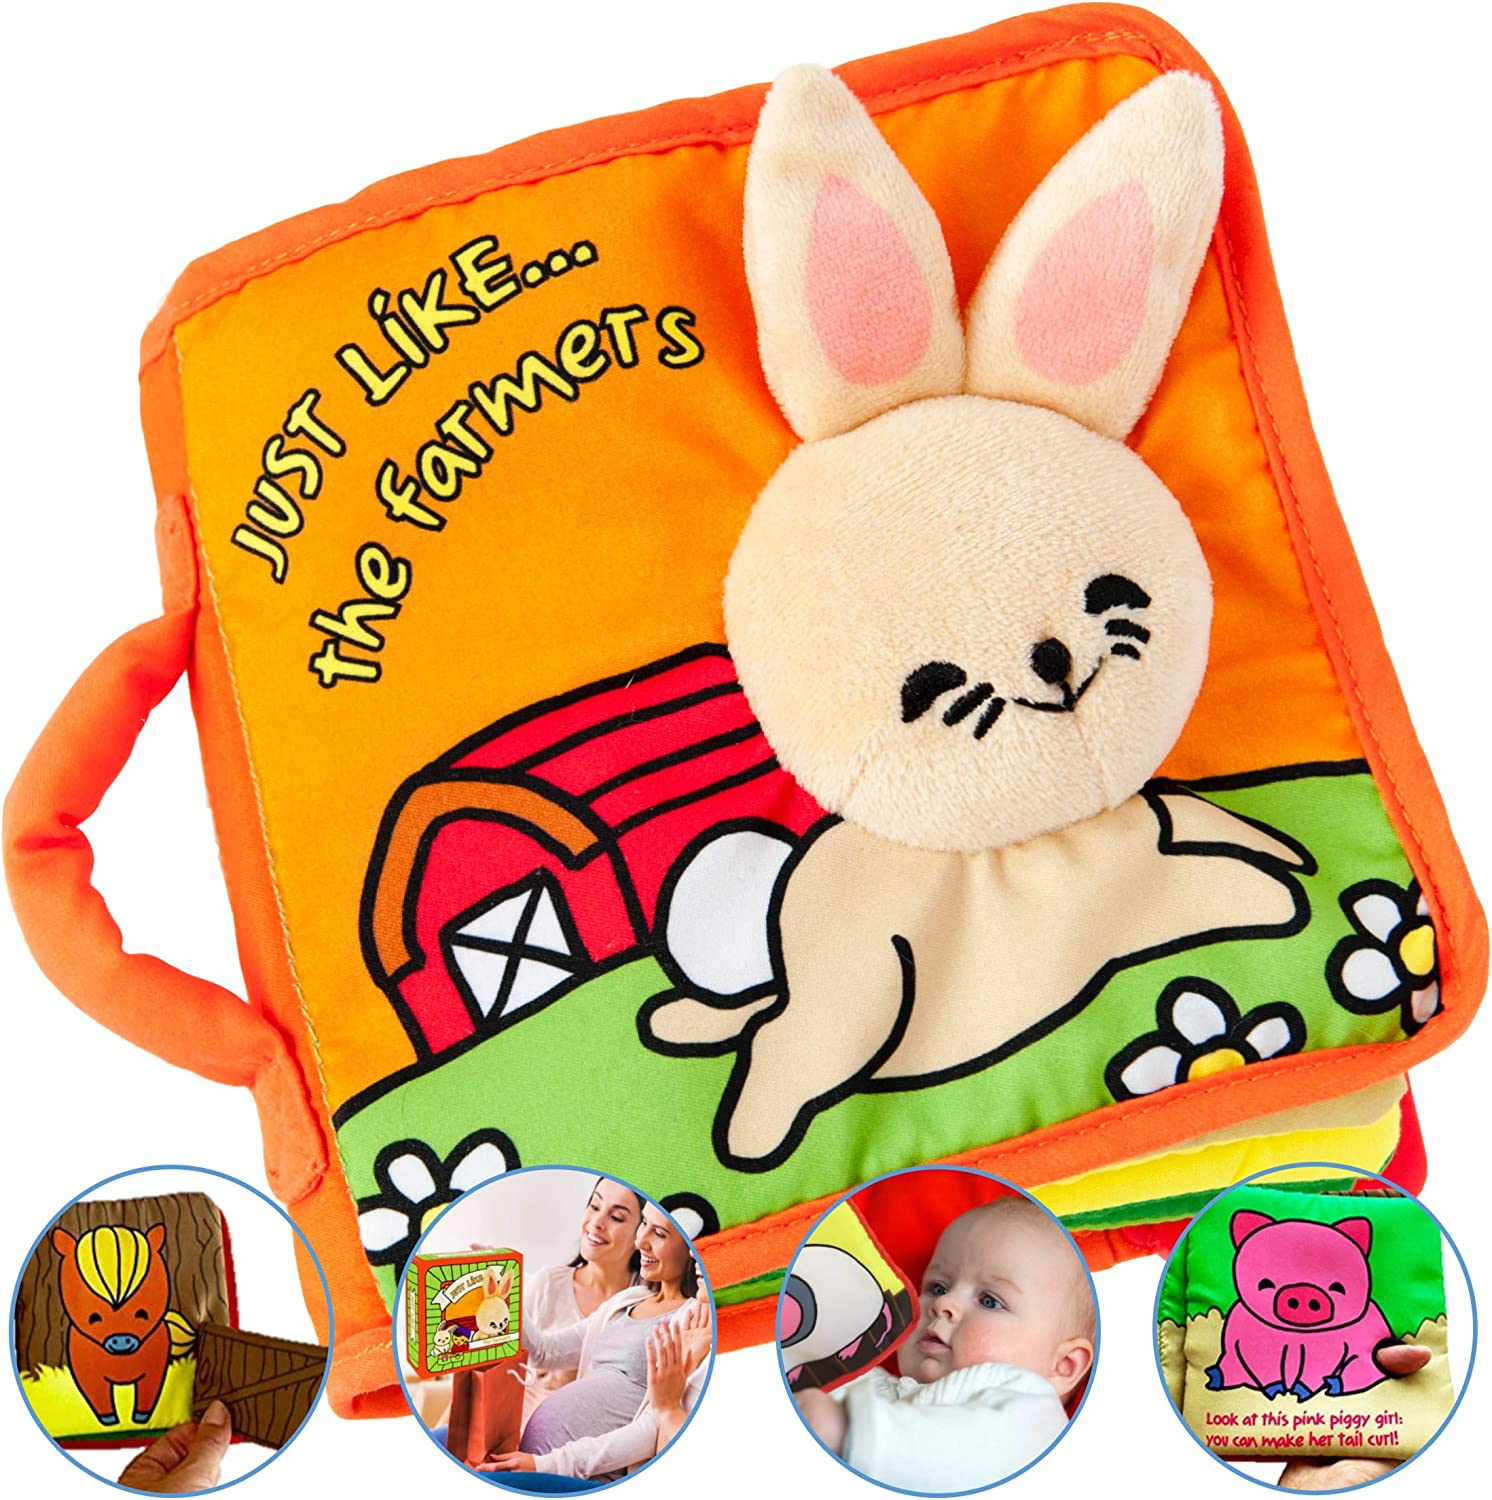 Premium Soft Baby Book First Year, Cloth Book Bunny with Crinkly Sounds, Fun Interactive Toy, Fabric Book for Babies & Infant 1 Year Old (Boy, Girl), Cute Baby Shower Gift, Touch and Feel Activity